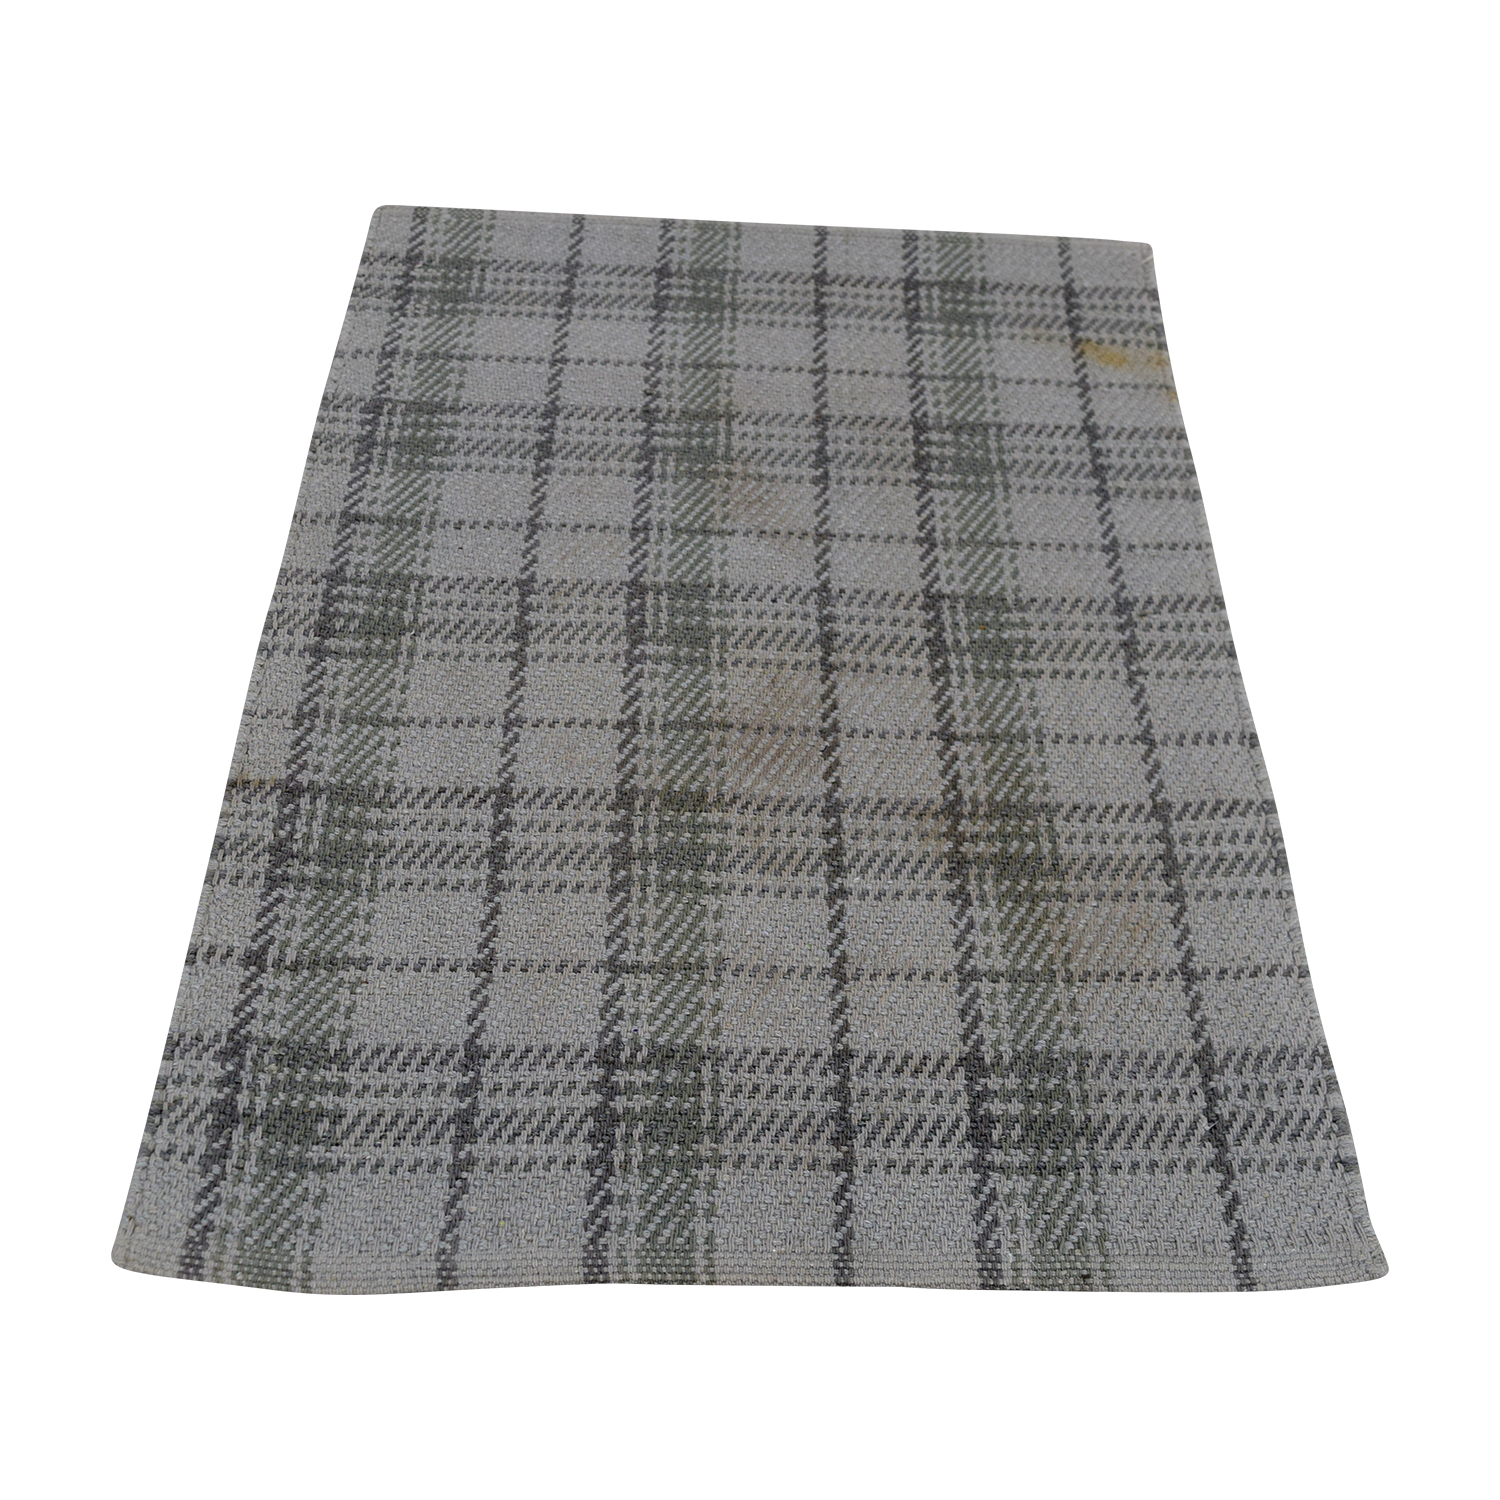 90 Off Obeetee Obeetee Grey Plaid Rug Decor